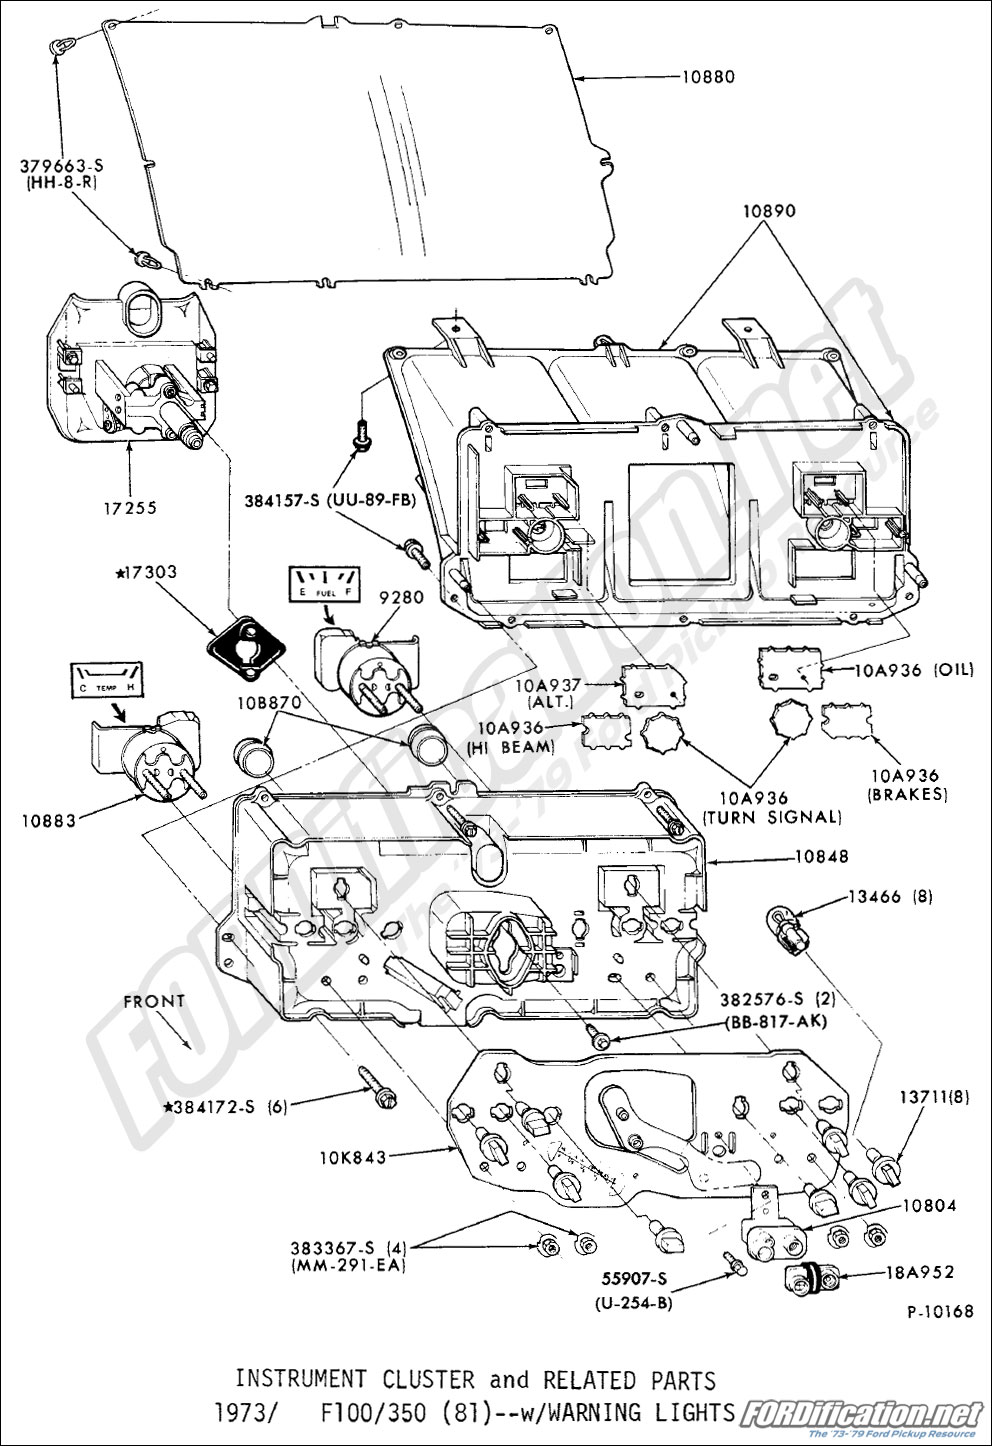 1965  et Instrument Panel Wiring Diagram moreover 4wtmr Ford Mustang 67 Mustang Convertible Installed furthermore 67 Mustang Frame Diagram further 1961 Ford Galaxie Wiring Diagram as well Seals For Wiper Pivot Stems. on 1966 mercury comet wiring diagram